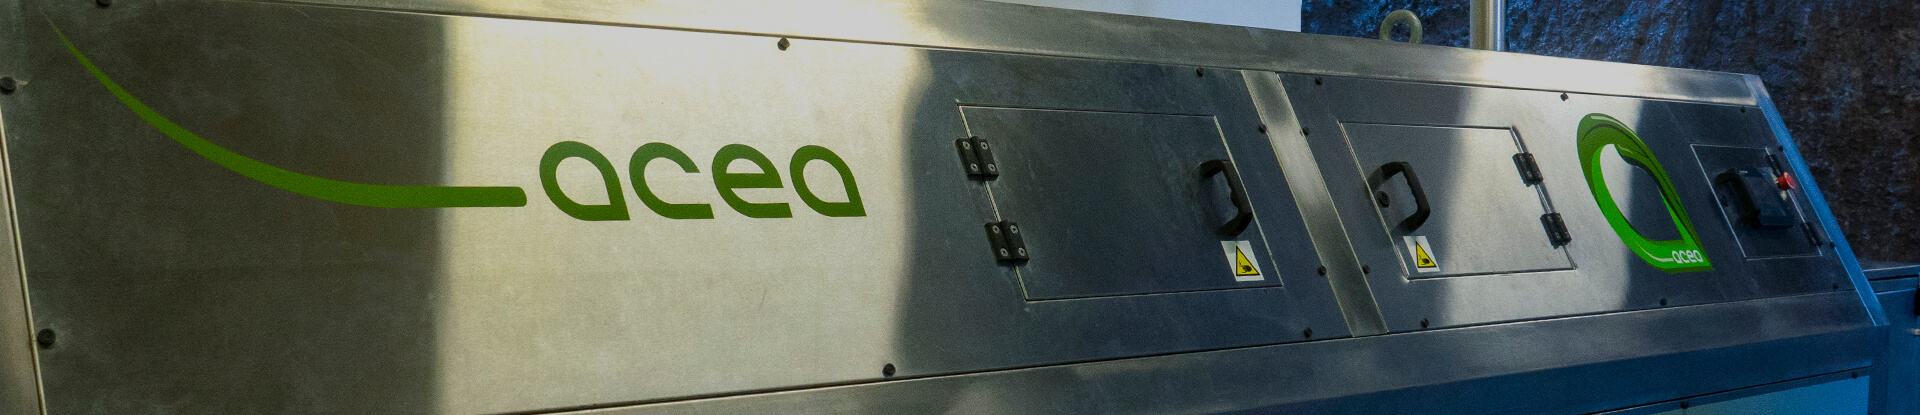 Acea Smart Comp for the diffused composting of the organic waste